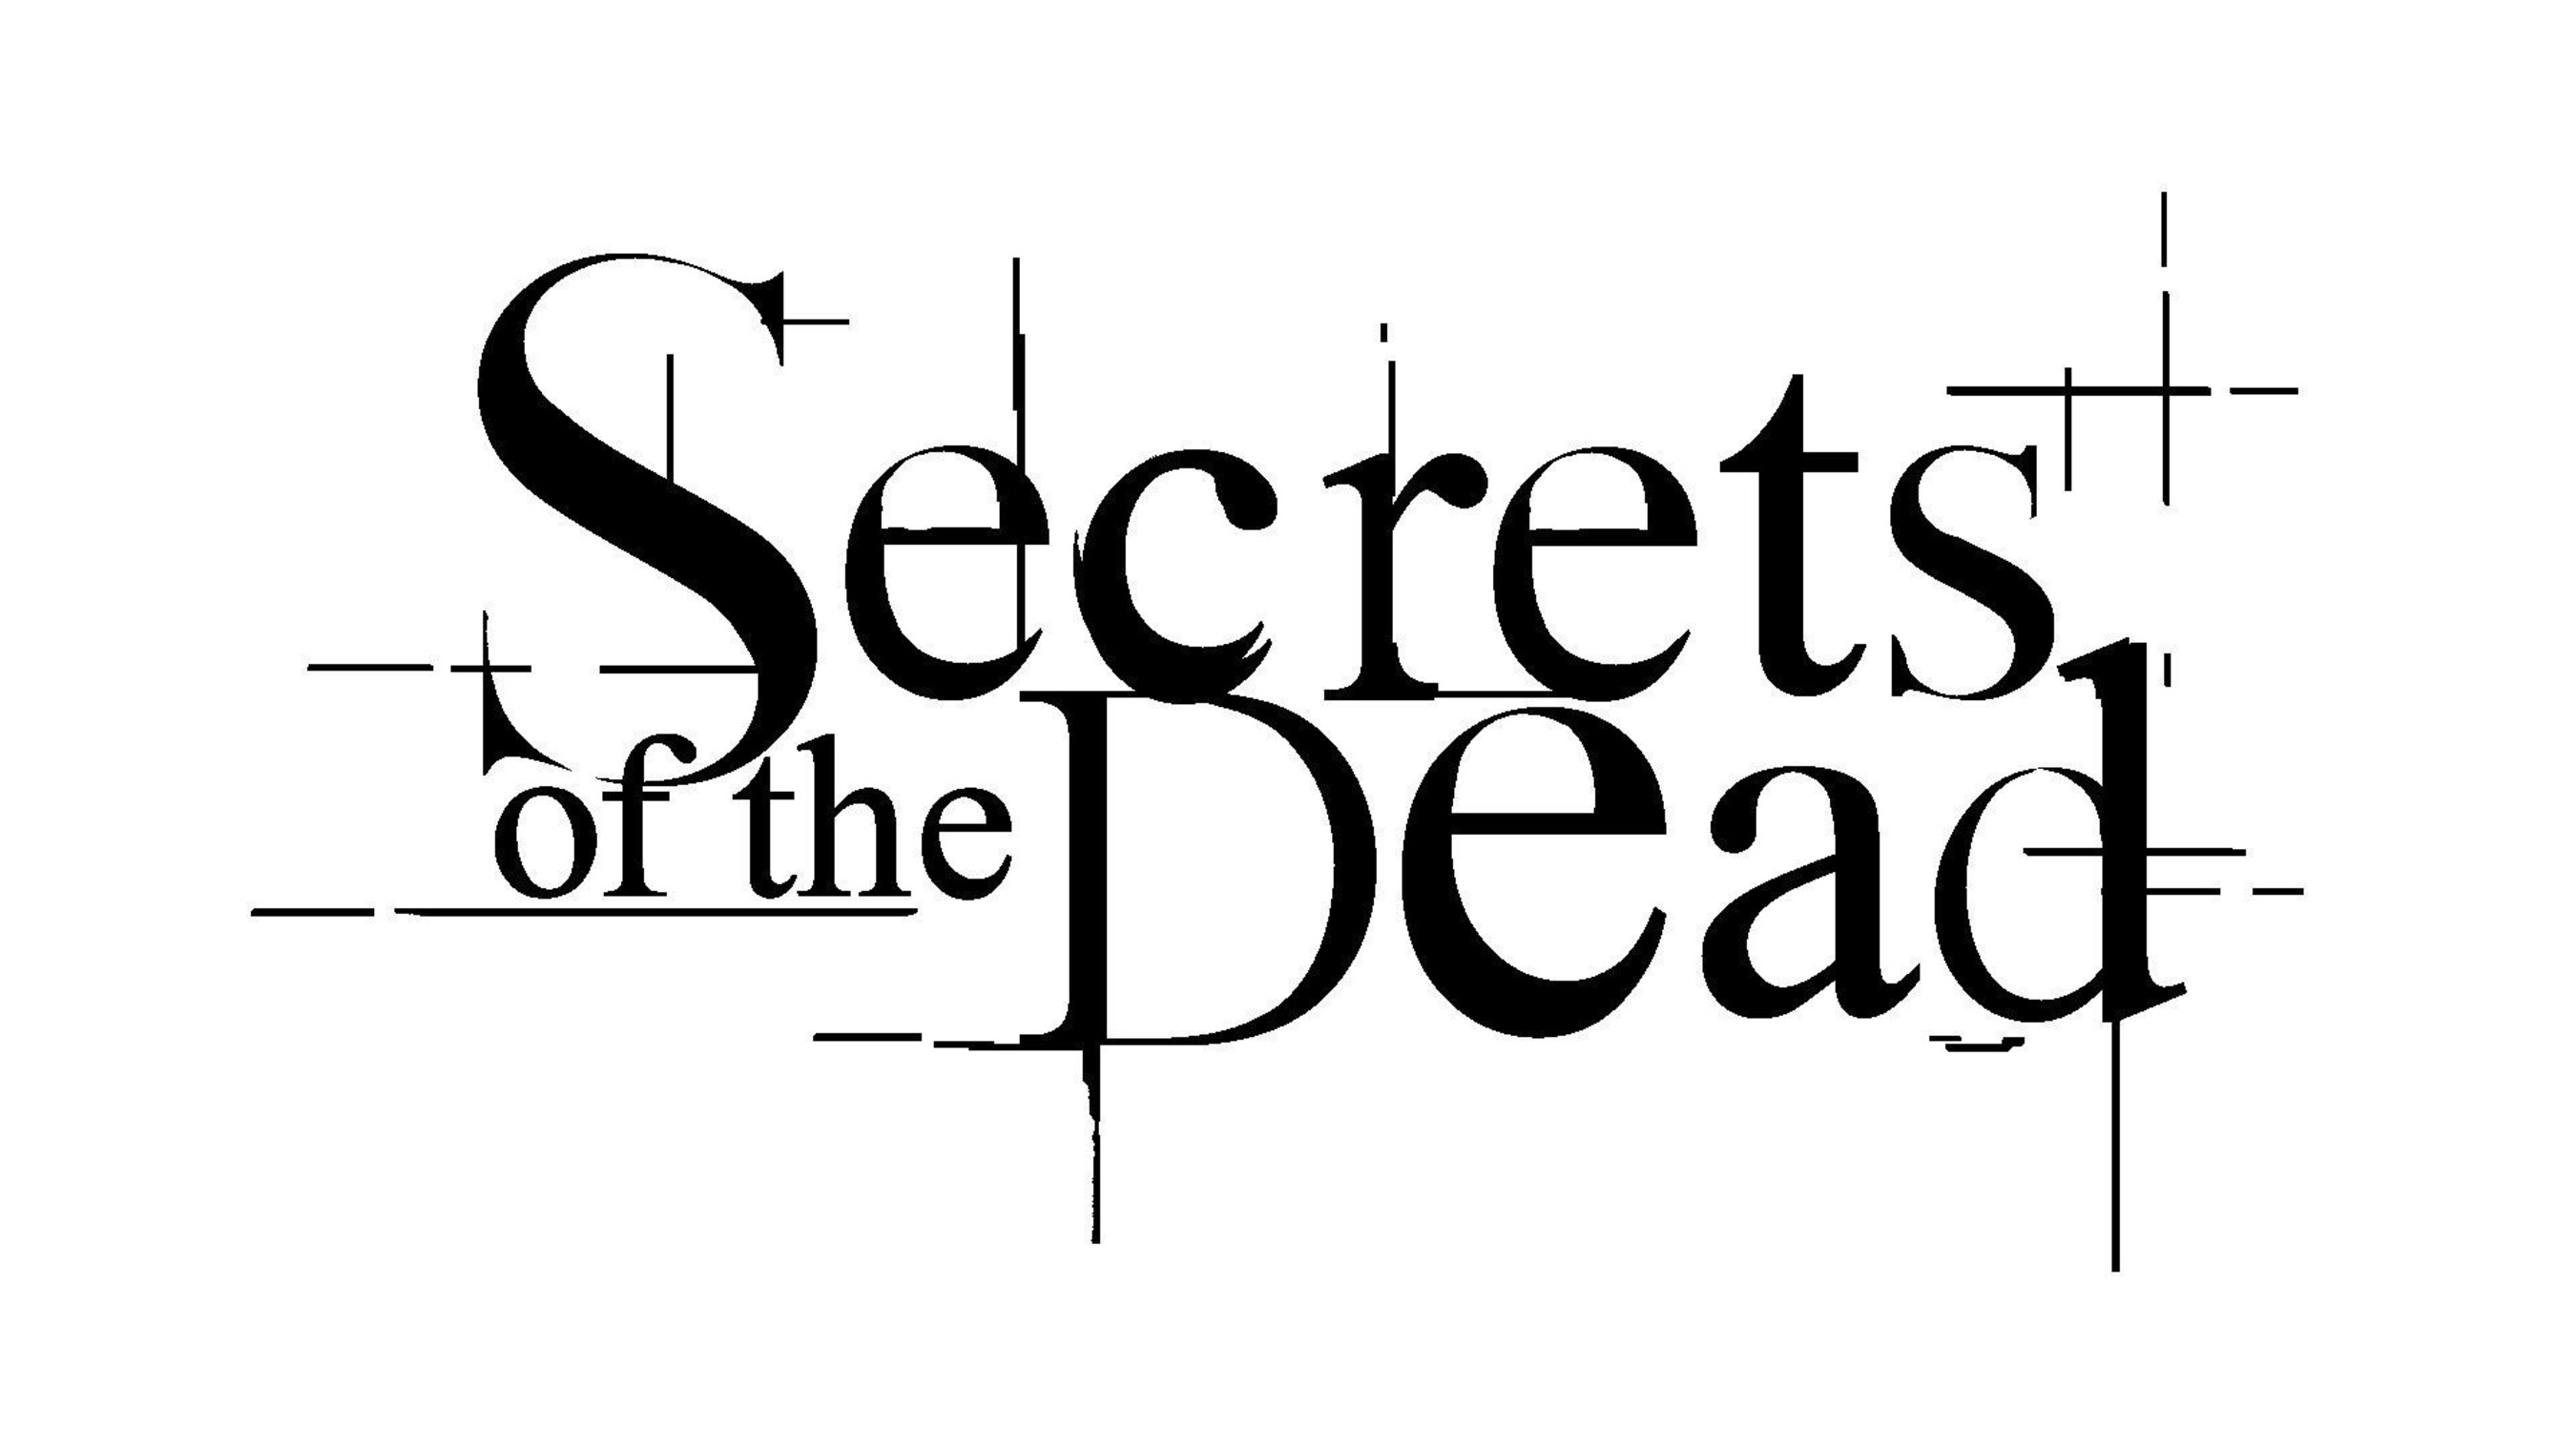 THIRTEEN's 'Secrets of the Dead' Discovers a World of Colossal Creatures, 'Graveyard of the Giant Beasts' Wednesday, November 2 at 10 p.m. on PBS